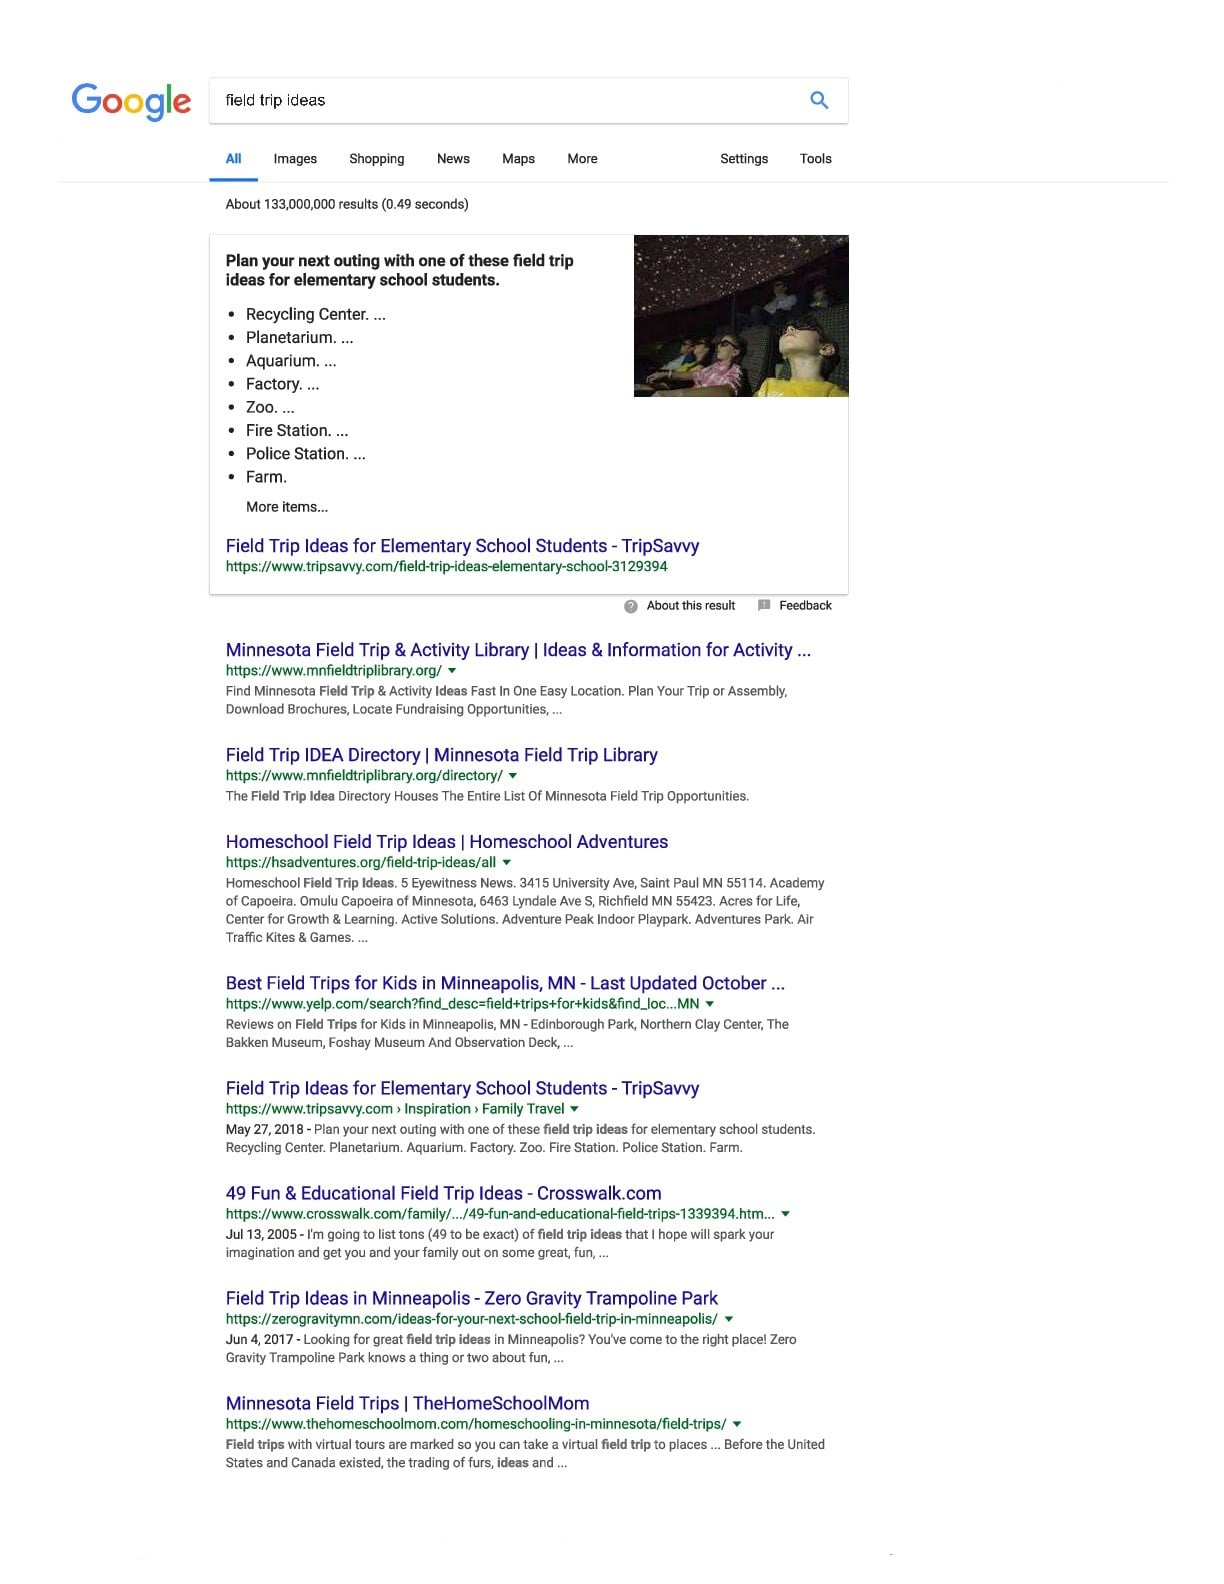 first page serp showing localization